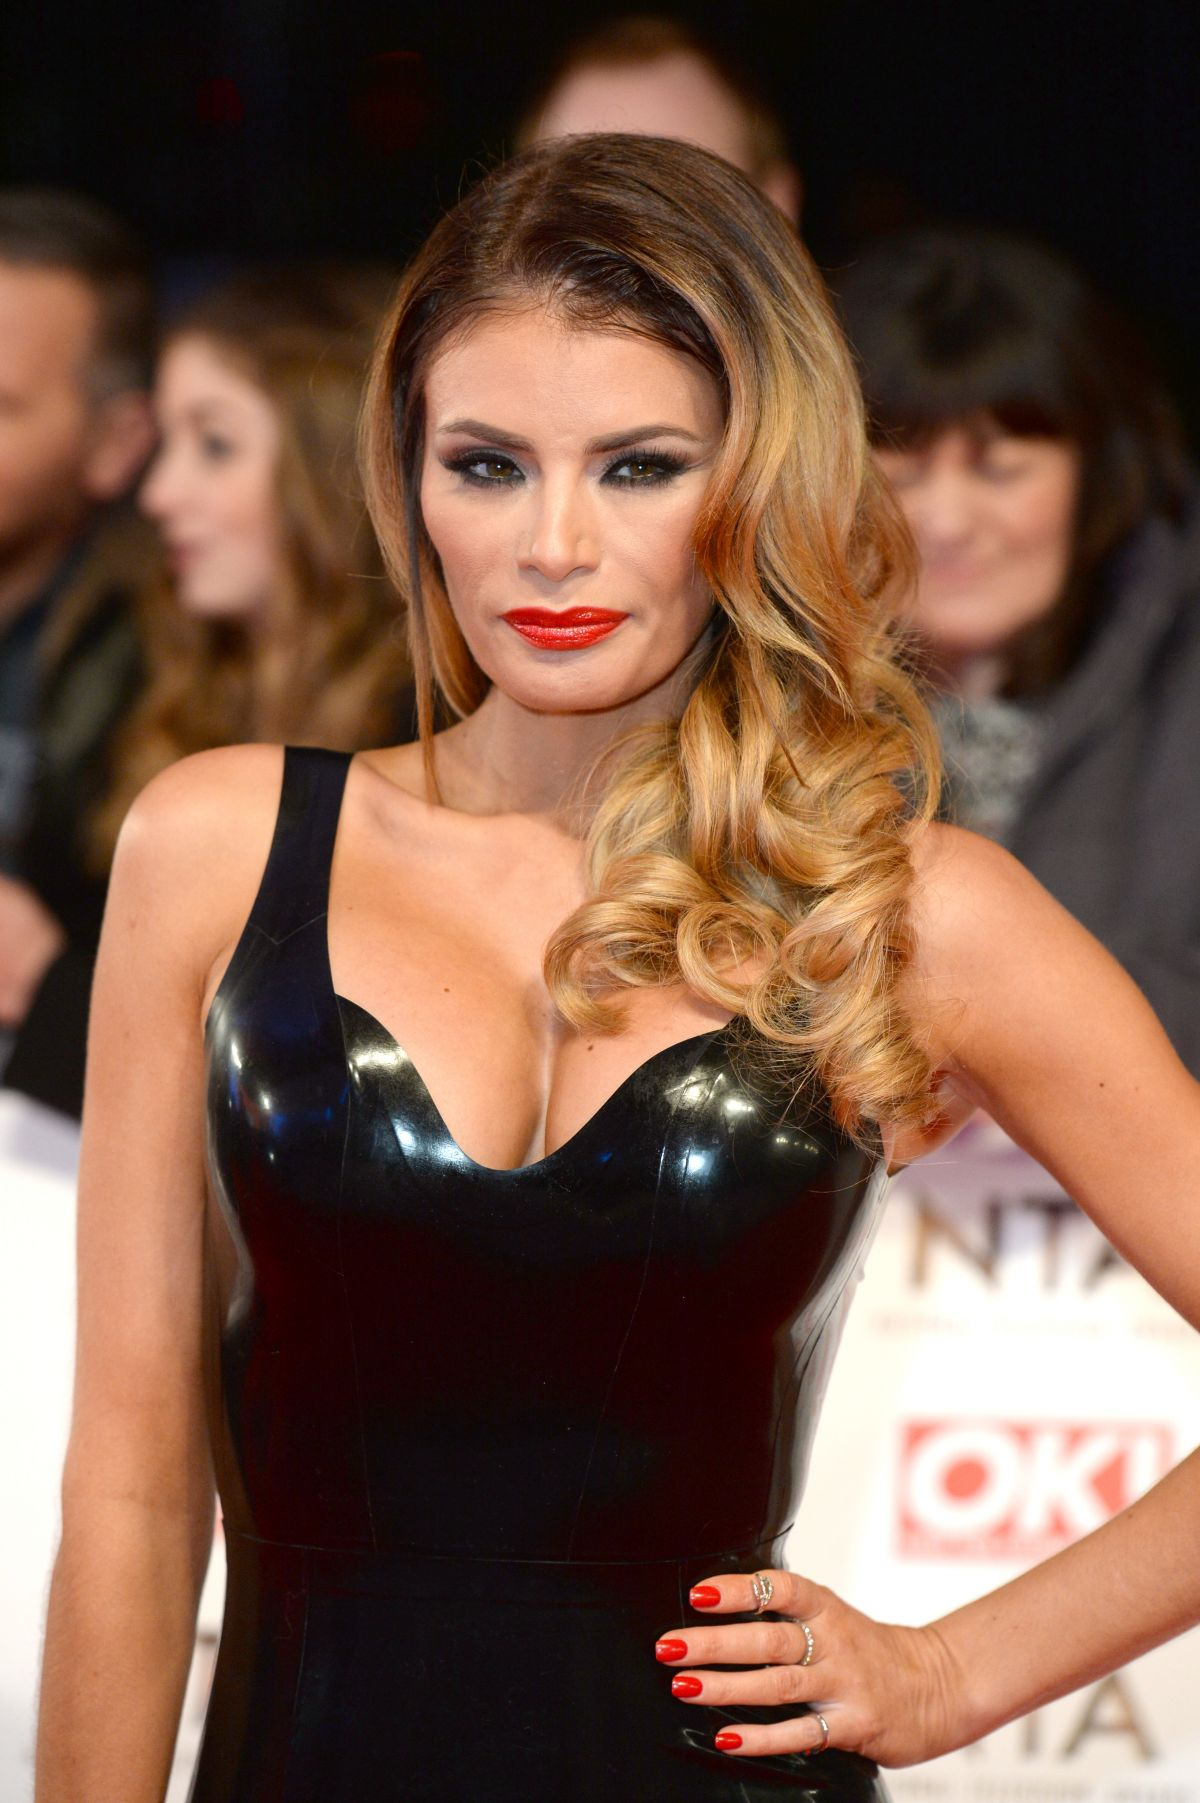 CHLOE SIMS at 2015 National Television Awards in London